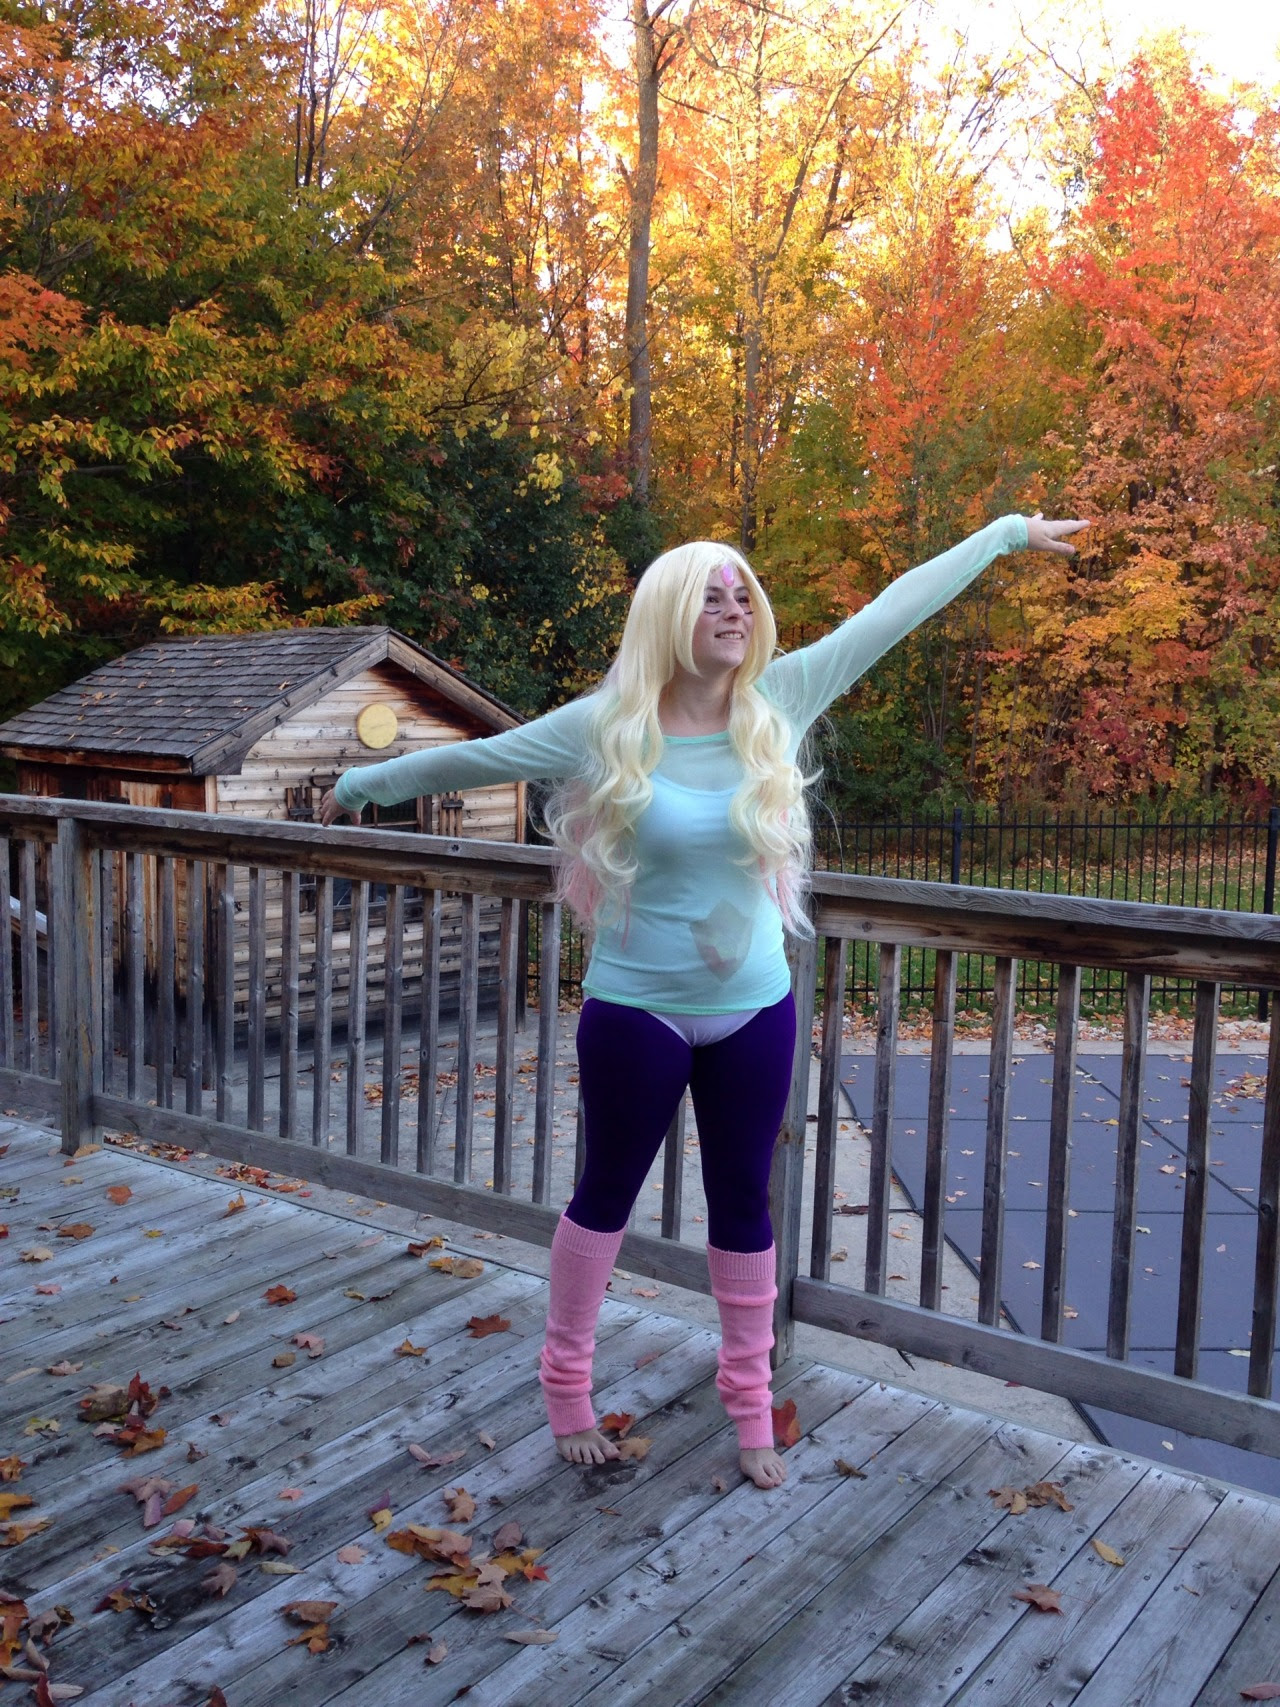 And here's some more pictures of my Rainbow Quartz cosplay